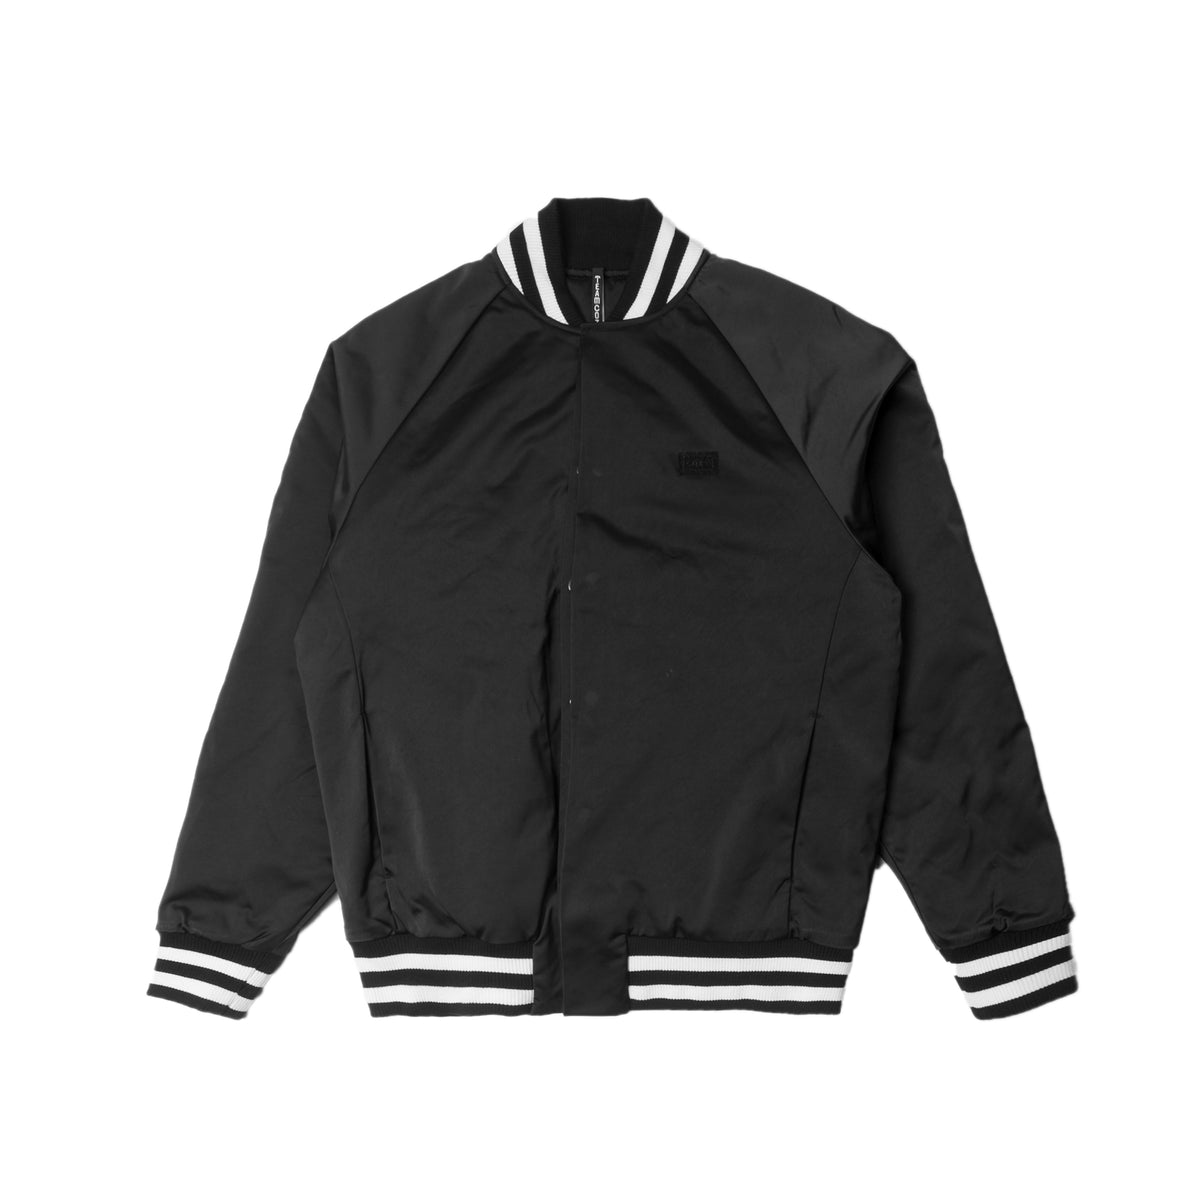 Astoria Jacket - Black